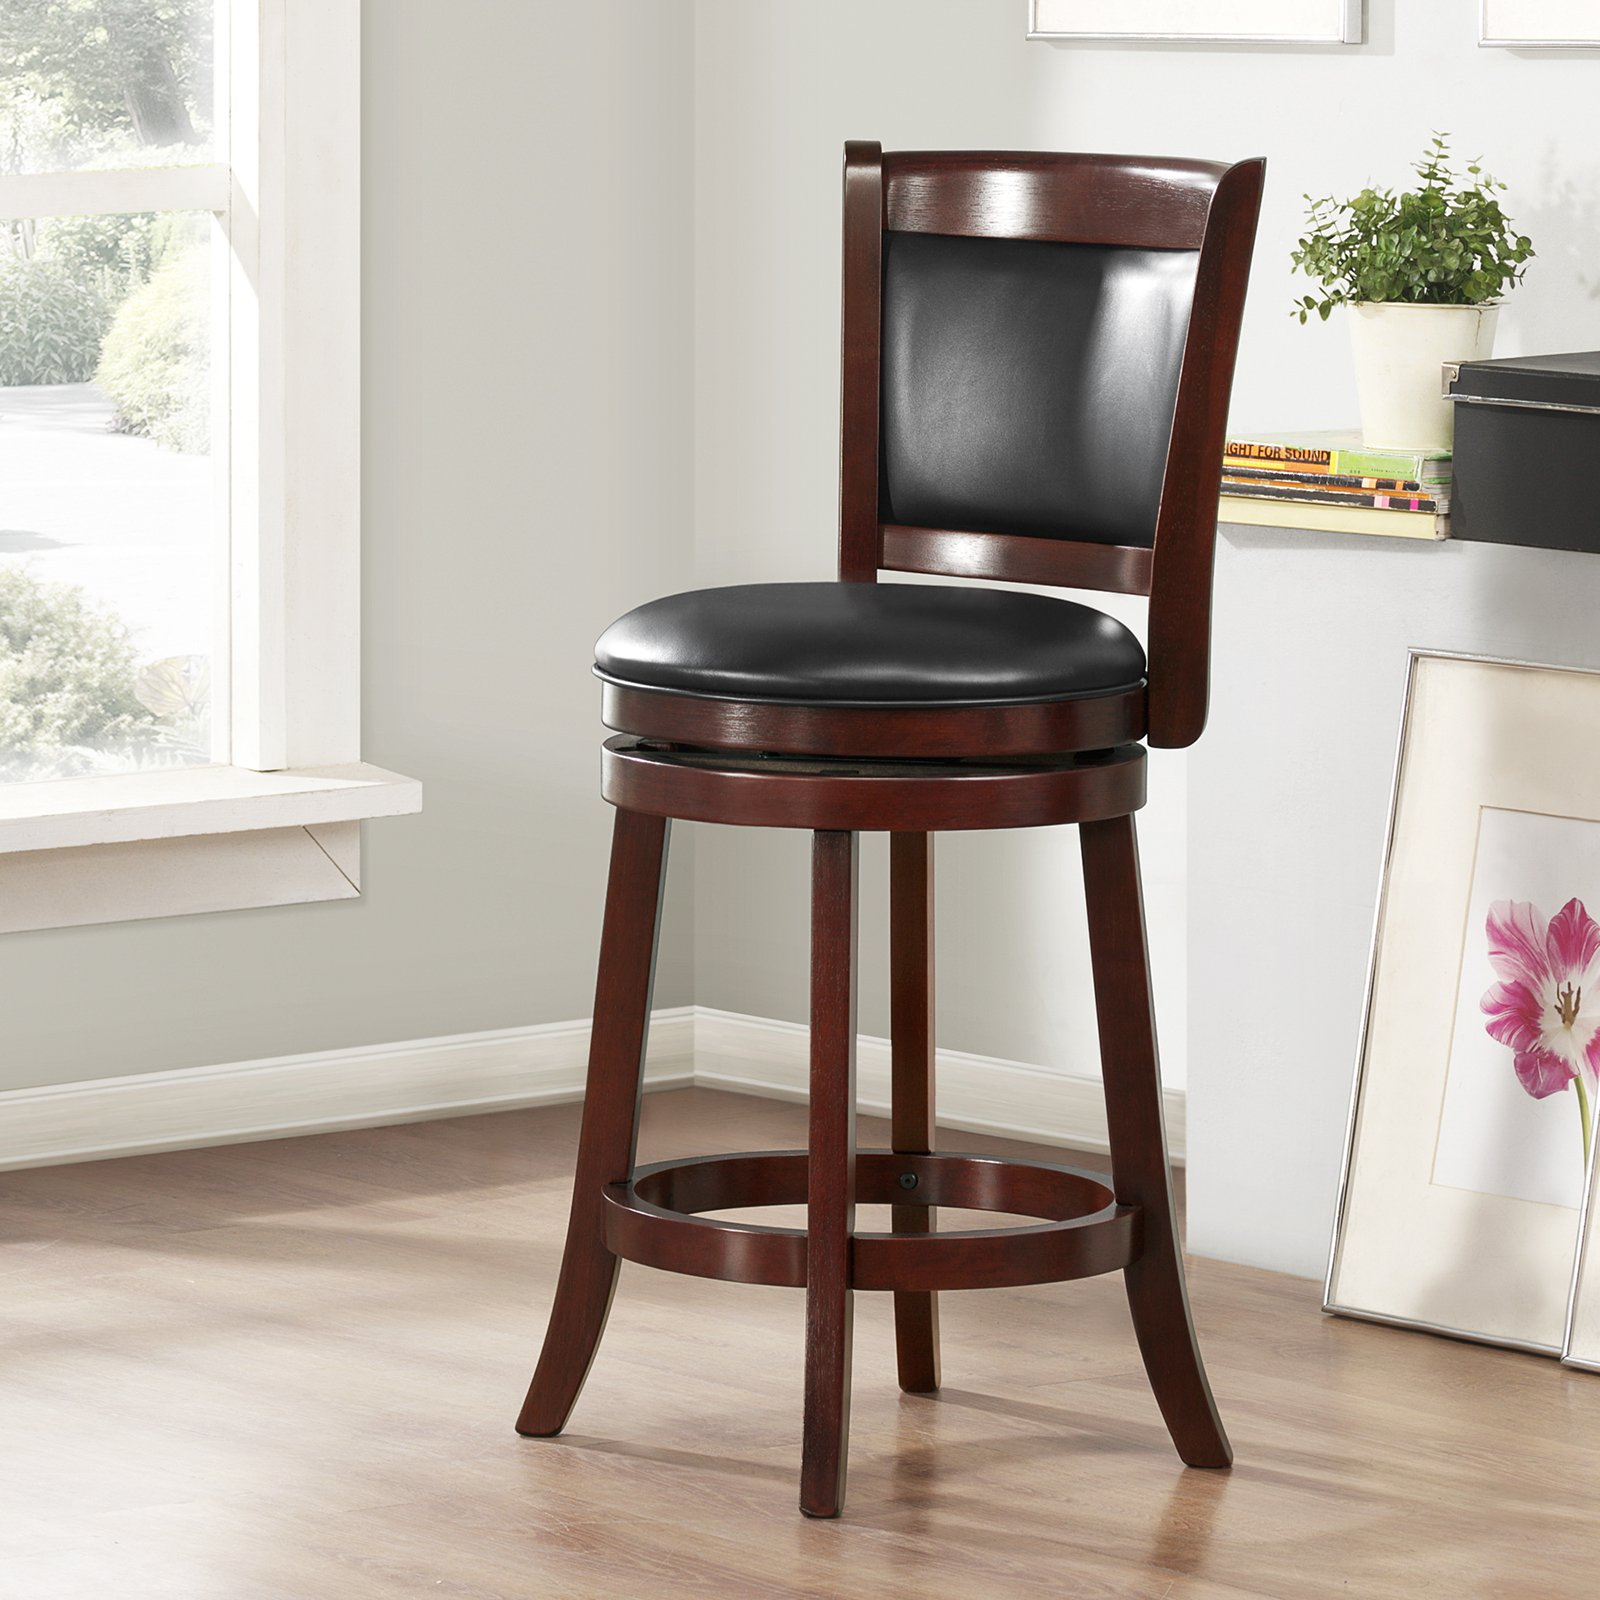 Weston Home Shapel 24 Swivel Cushion Back Counter Stool With Faux